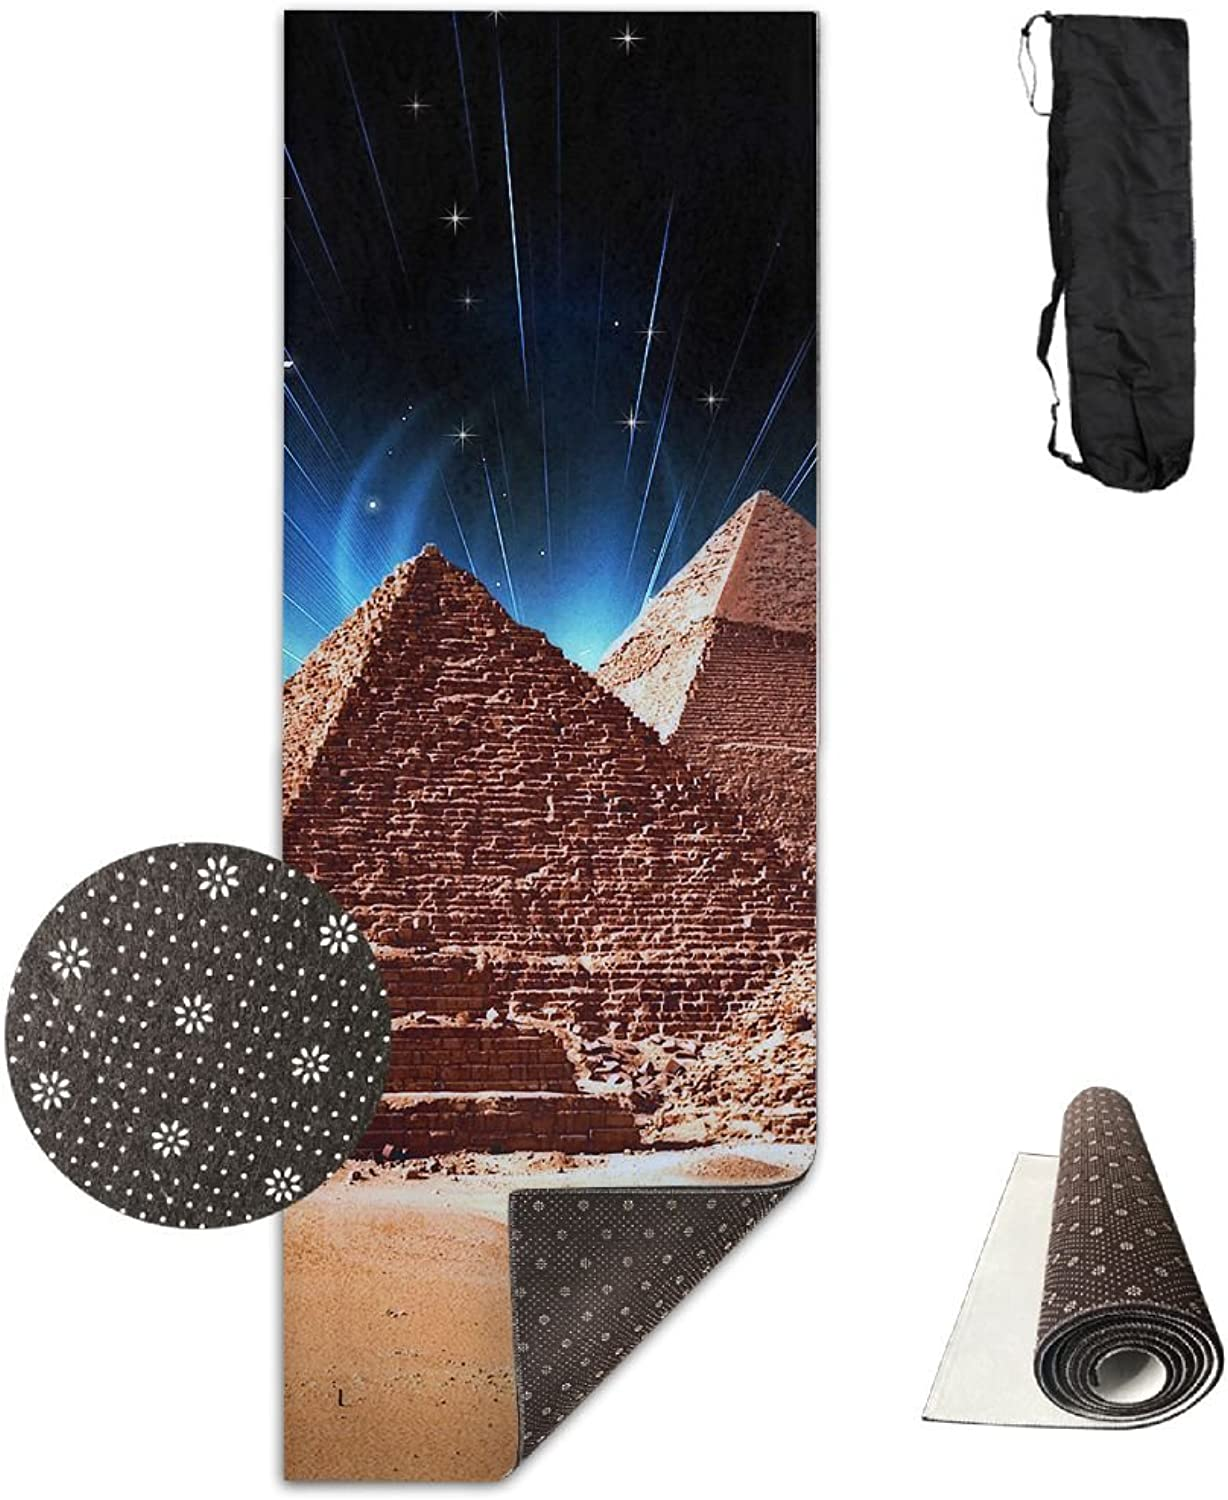 Gym Mat Pyramids Of Egypt Fitness High Density AntiTear Exercise Yoga Mat With Carrying Bag For Exercise,Pilates